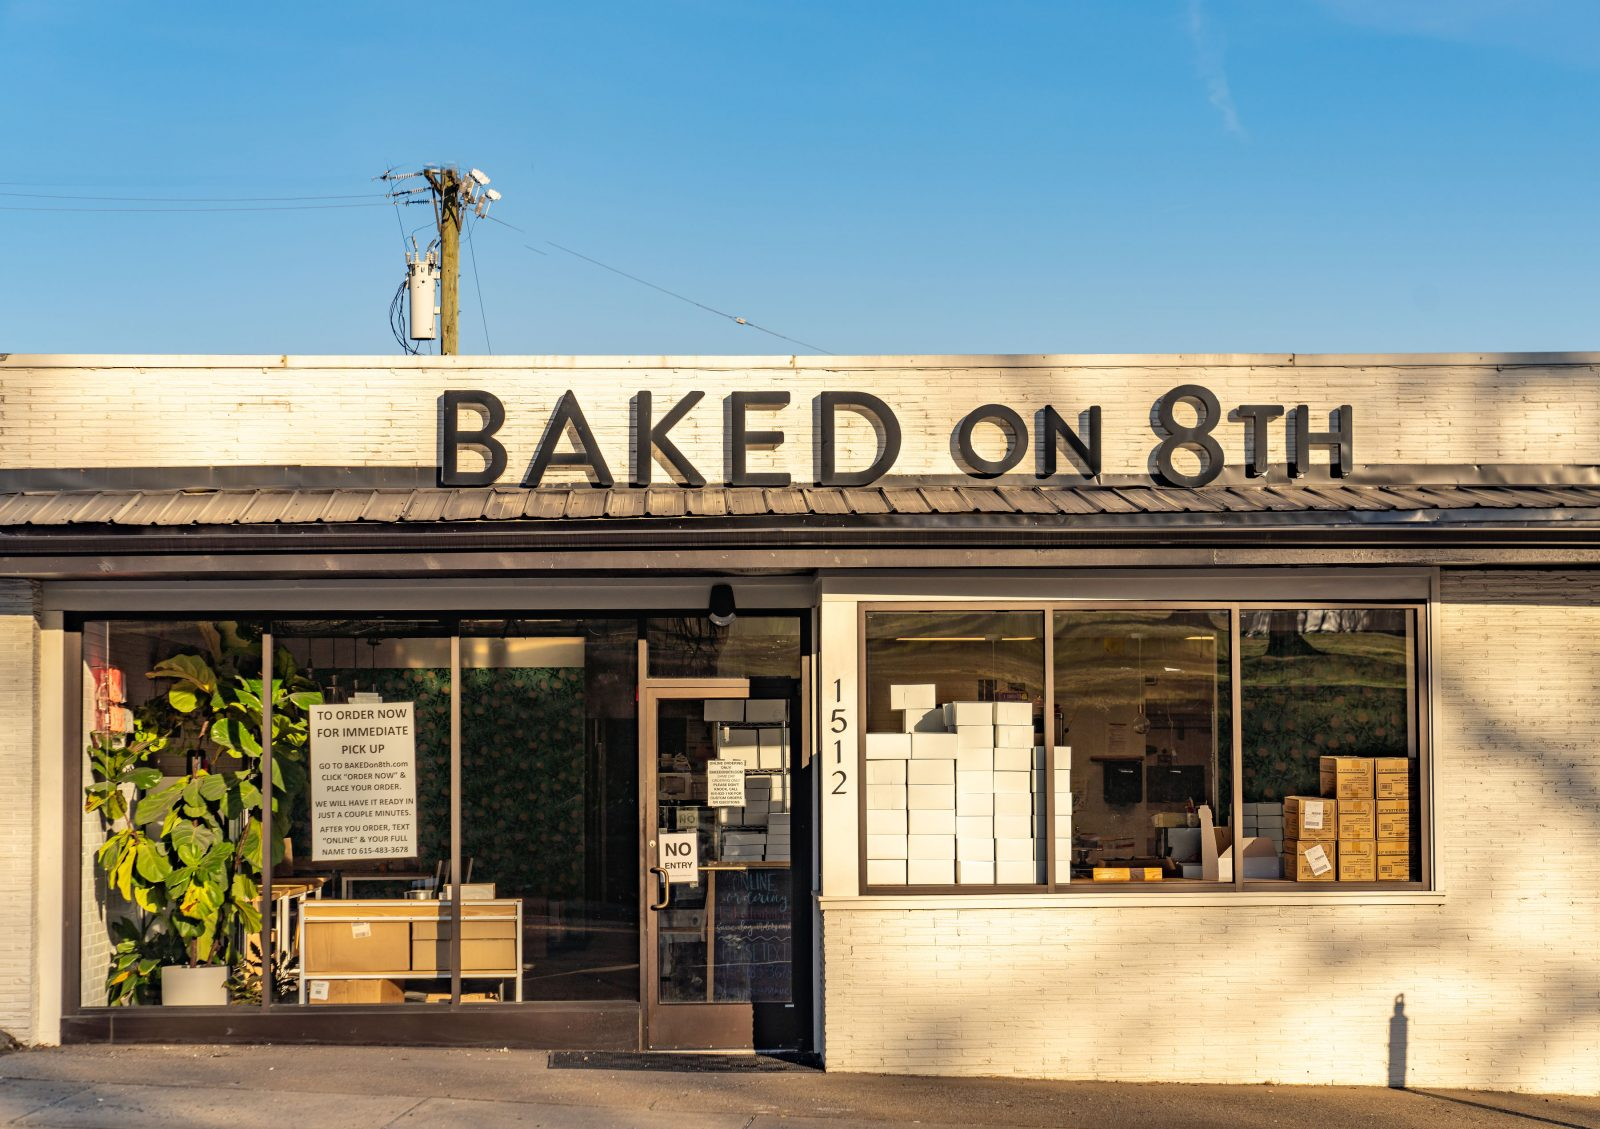 Laura Lea Bryant's recommendation for the bakery Baked on 8th.